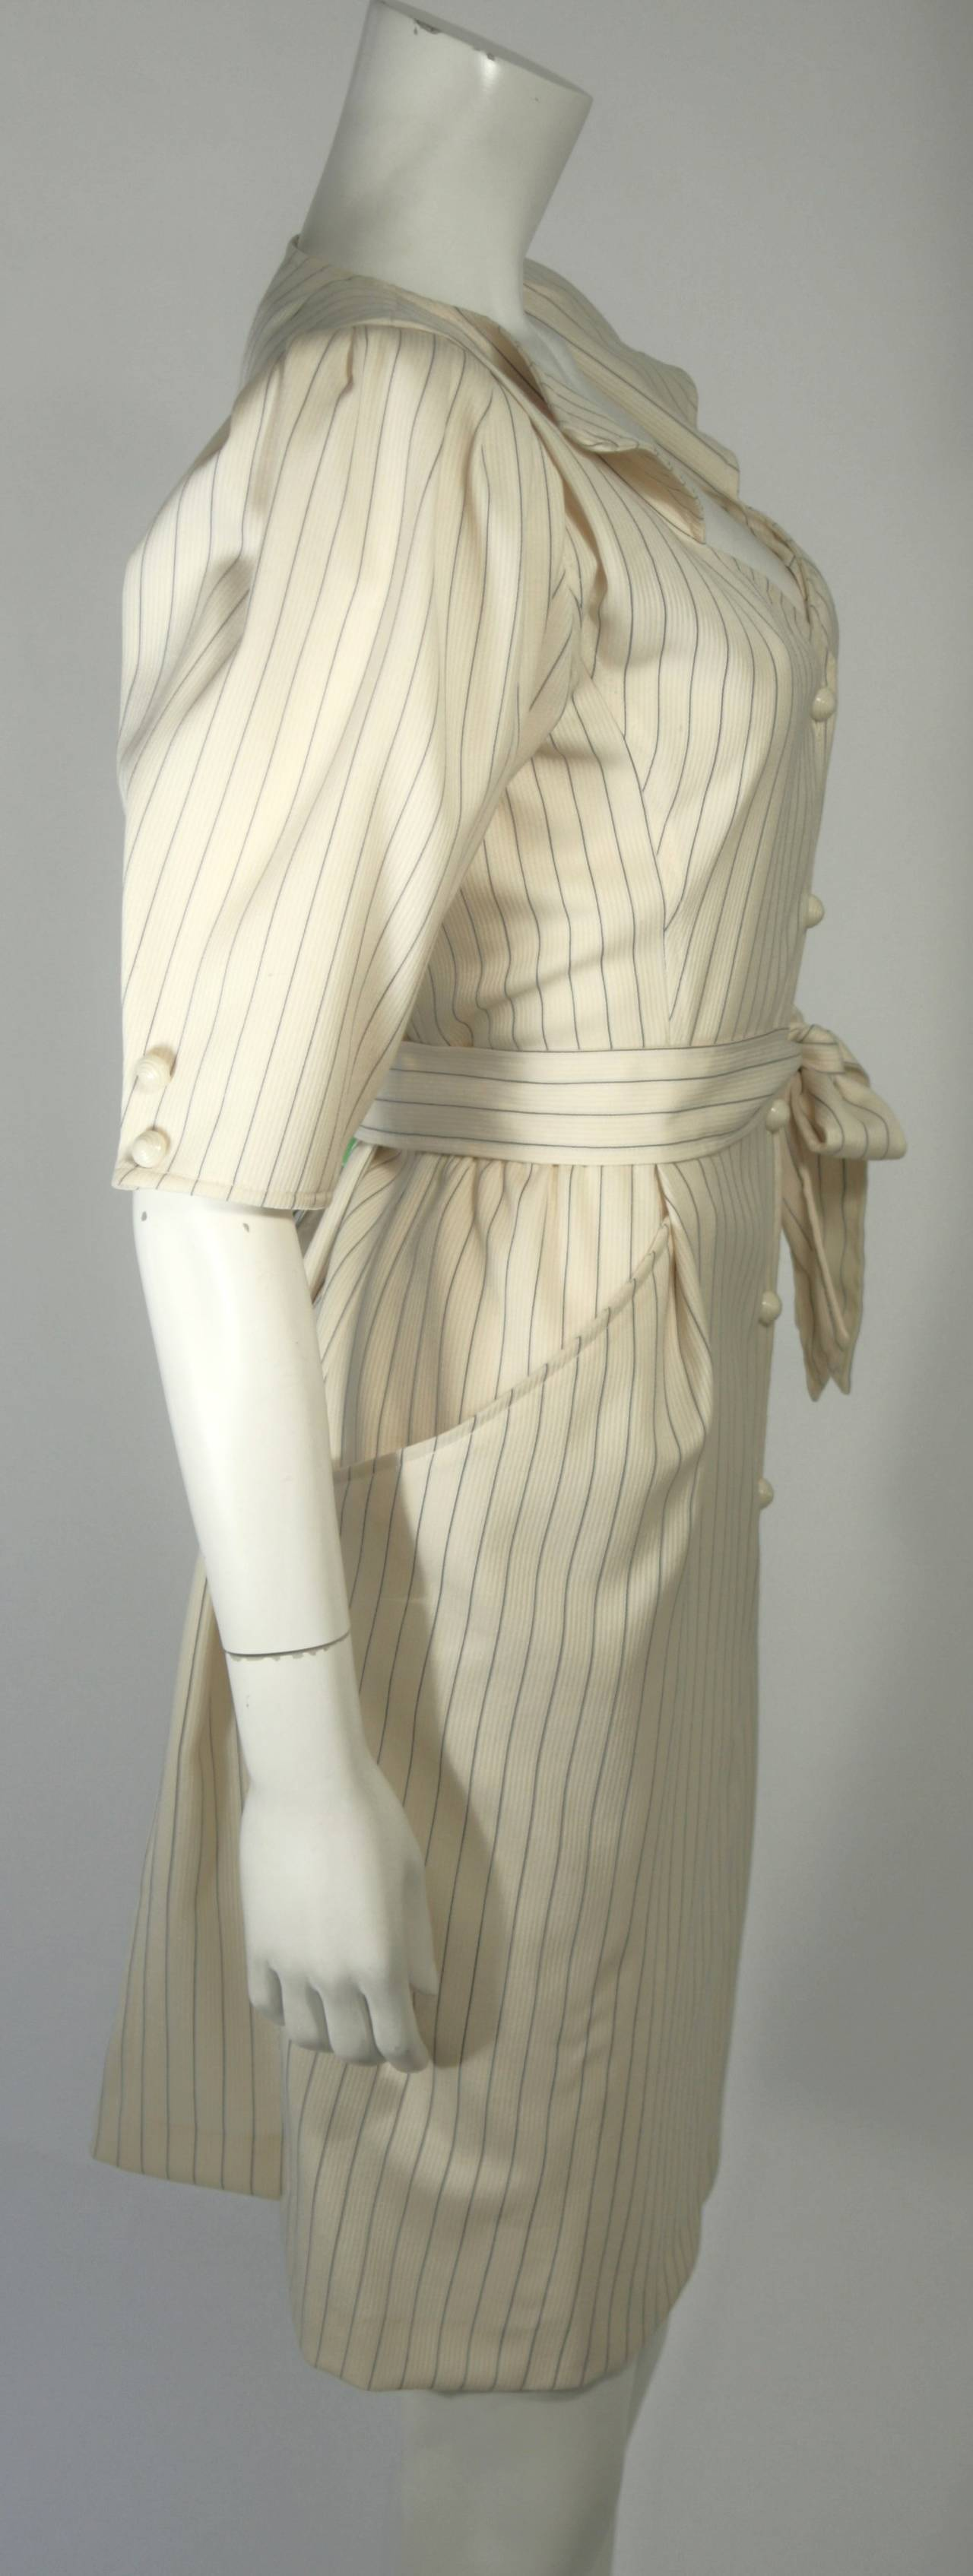 Ungaro Cream Pin Stripe Dress with Center Front Buttons 42 8 In Excellent Condition For Sale In Los Angeles, CA